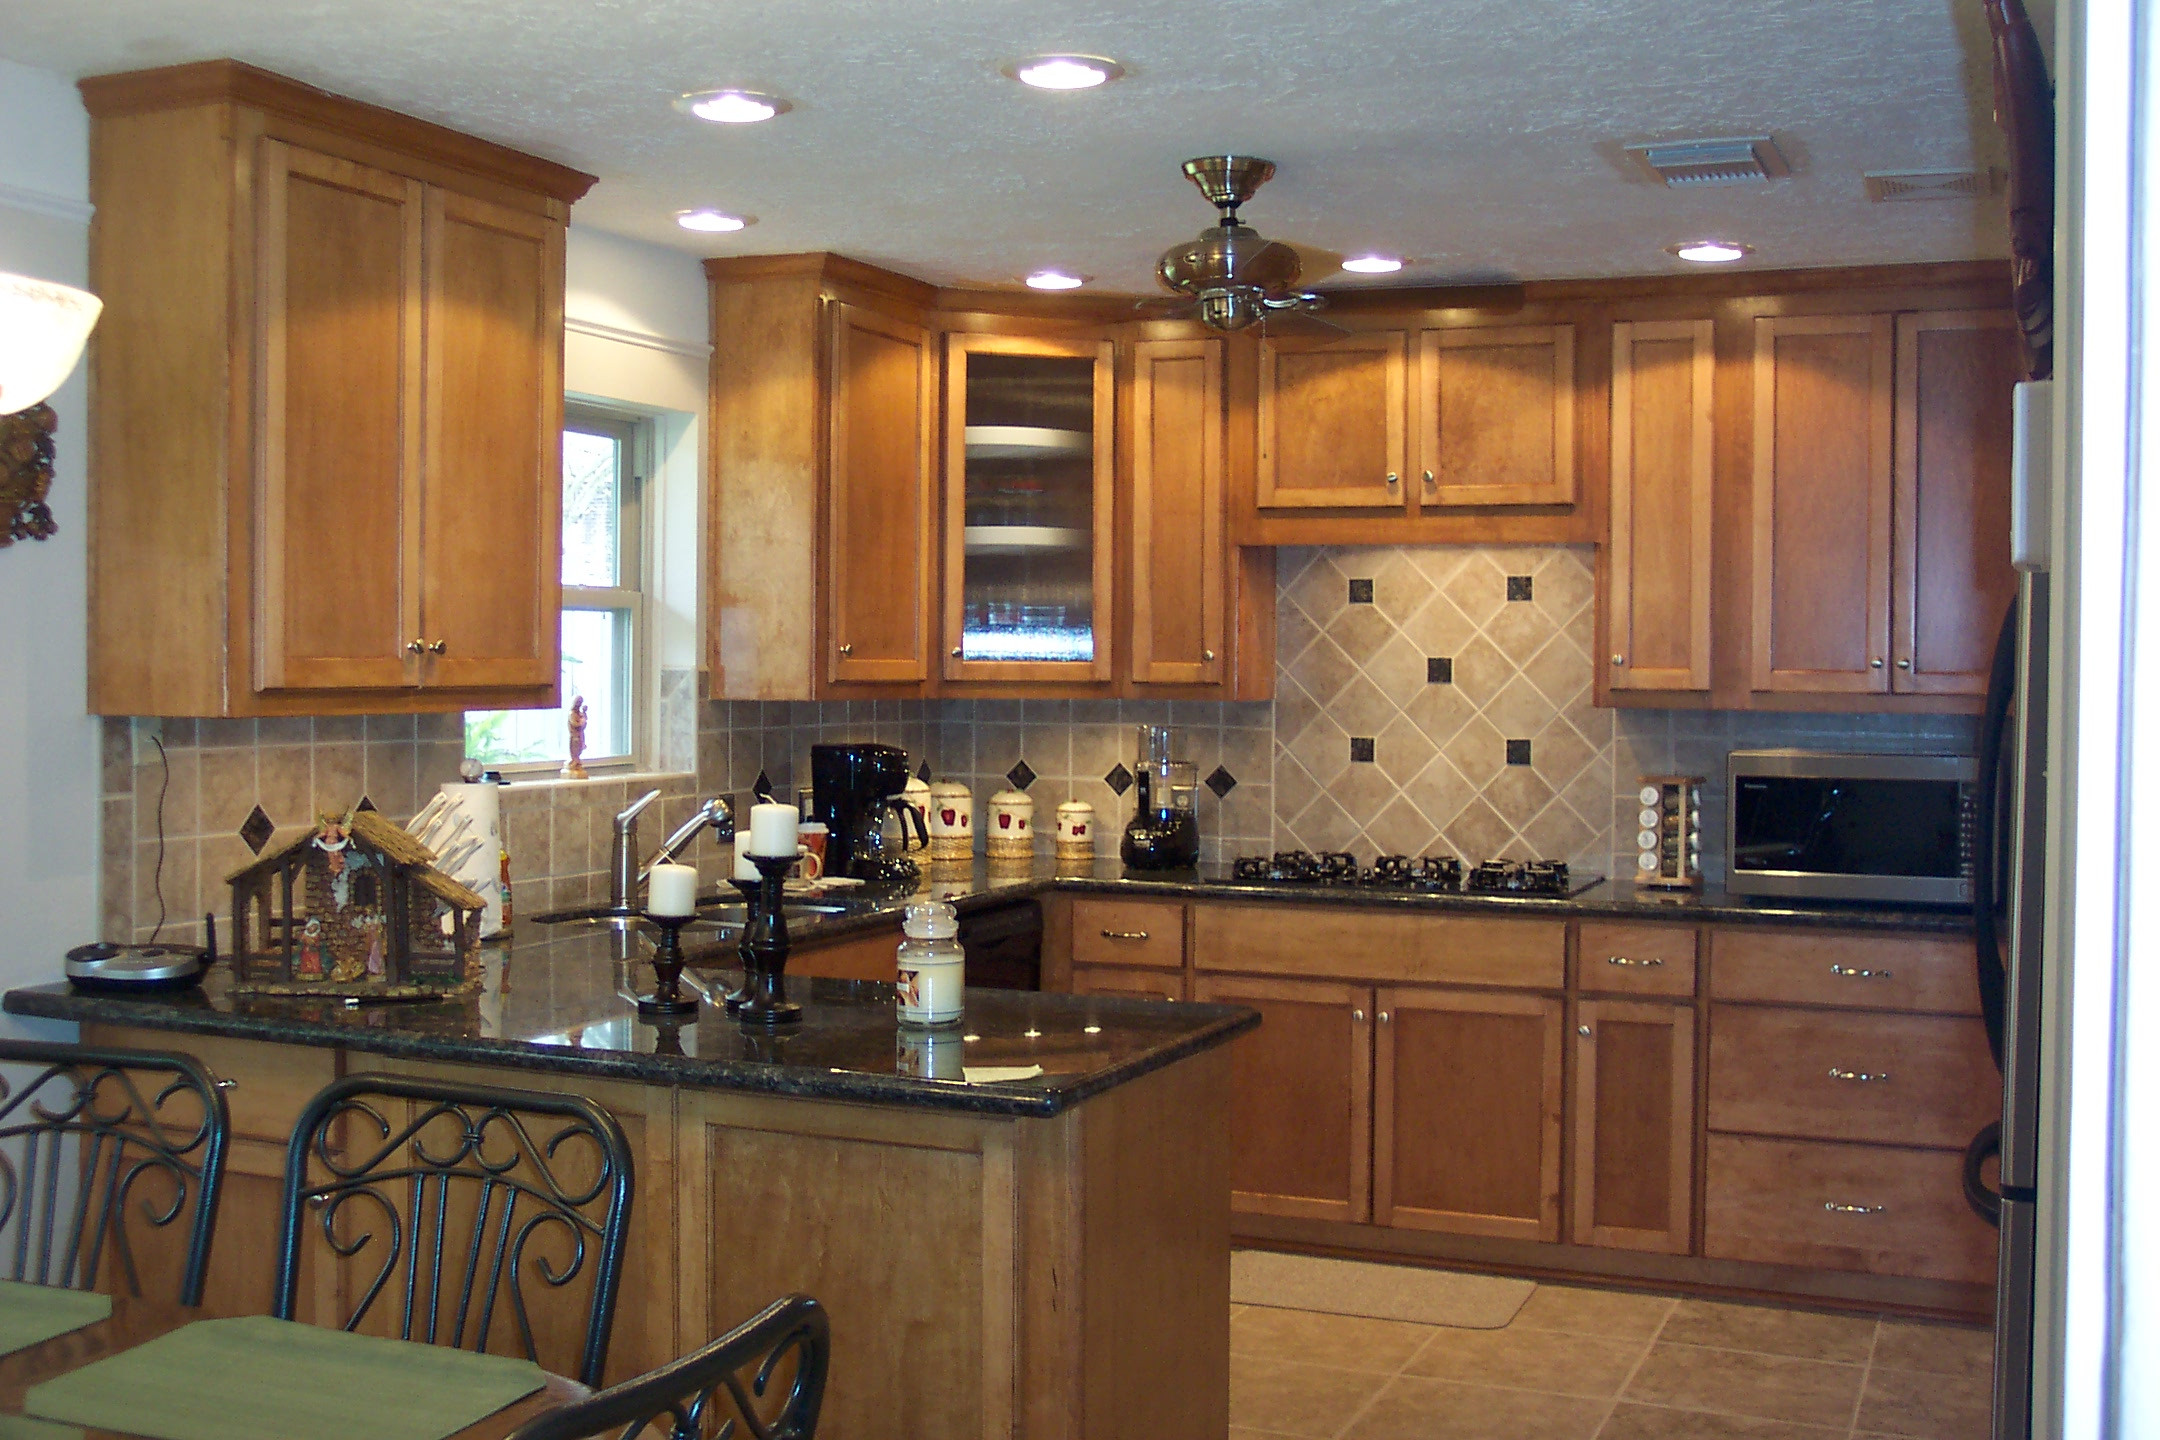 Best ideas about Remodel Kitchen Ideas . Save or Pin Kitchen Remodeling Ideas & s Now.